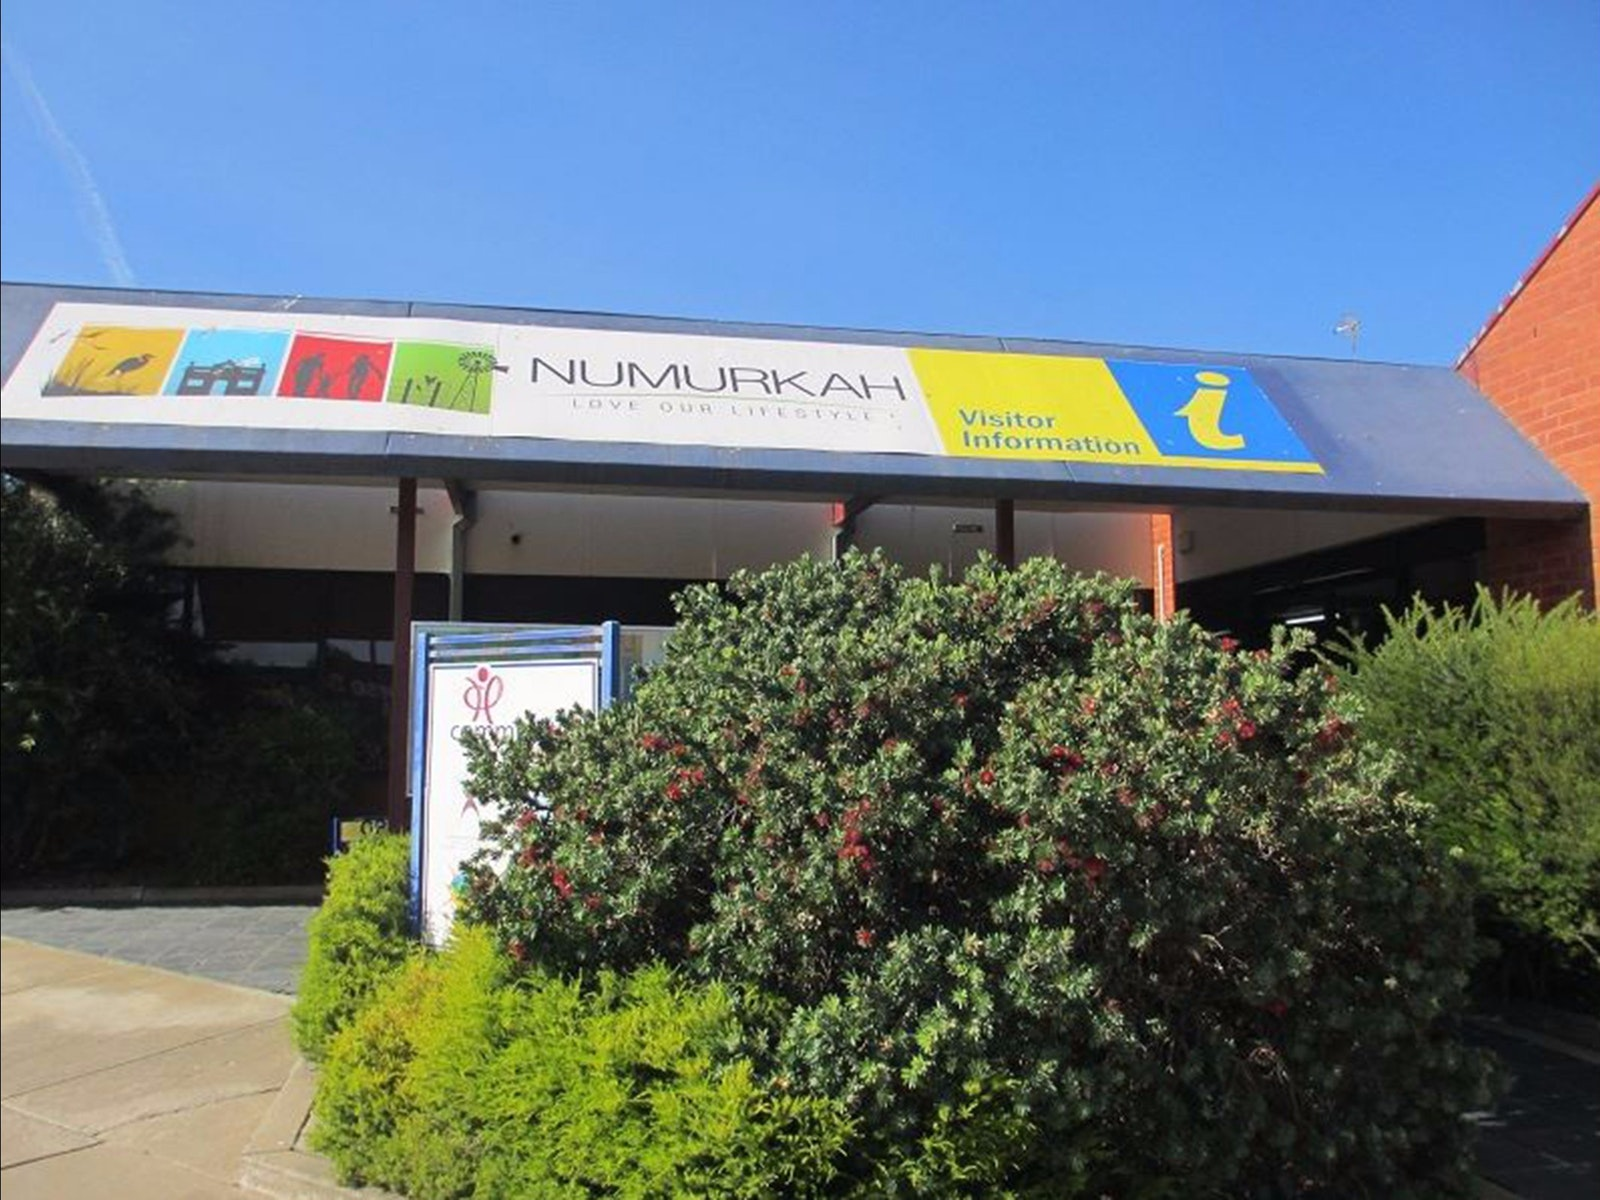 Numurkah Visitor Information Centre